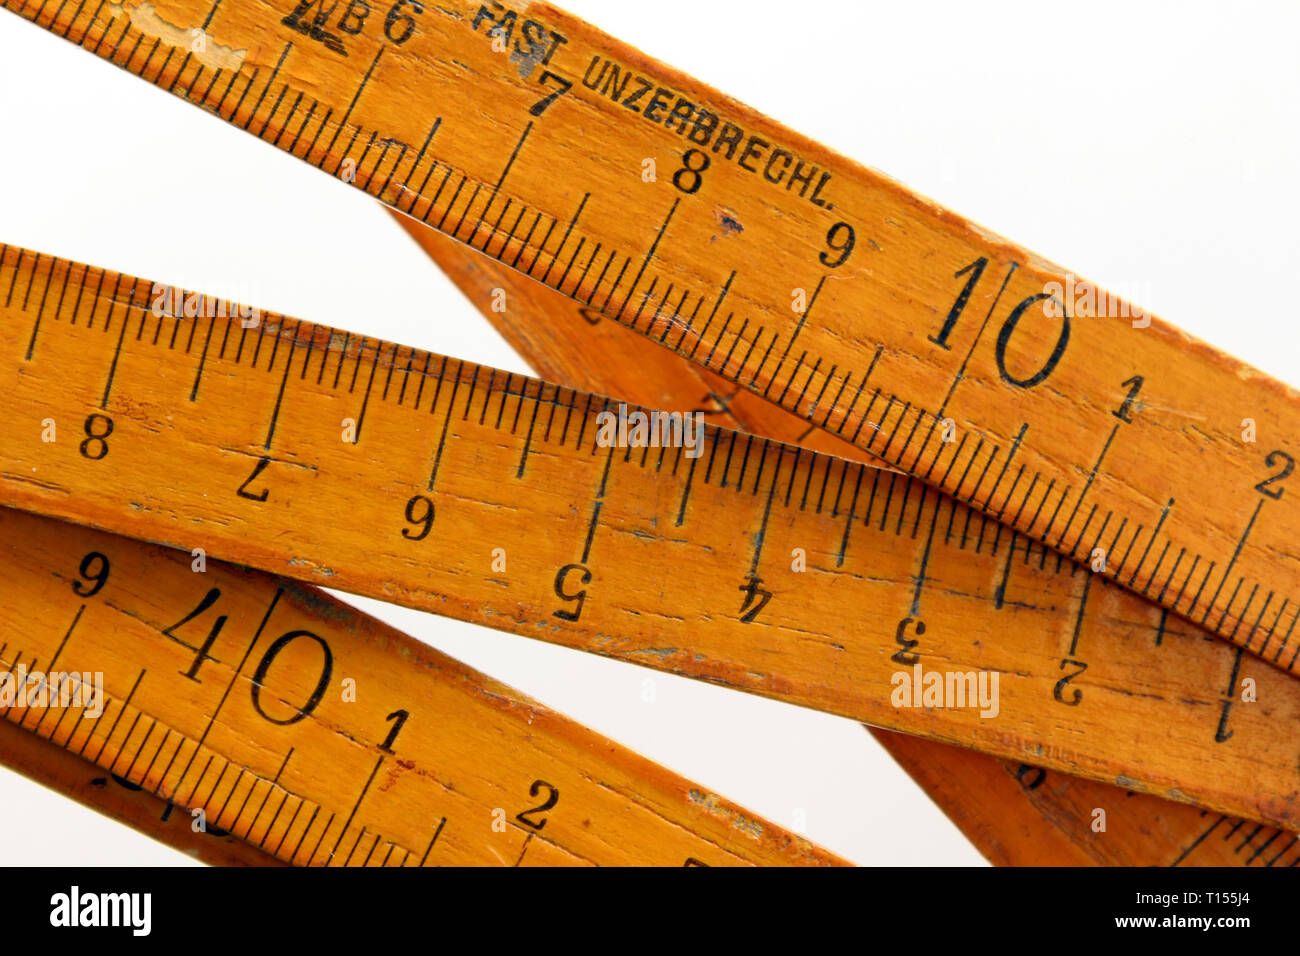 Vintage wooden folding ruler isolated on a white background.isolated on white background, close-up - Stock Image